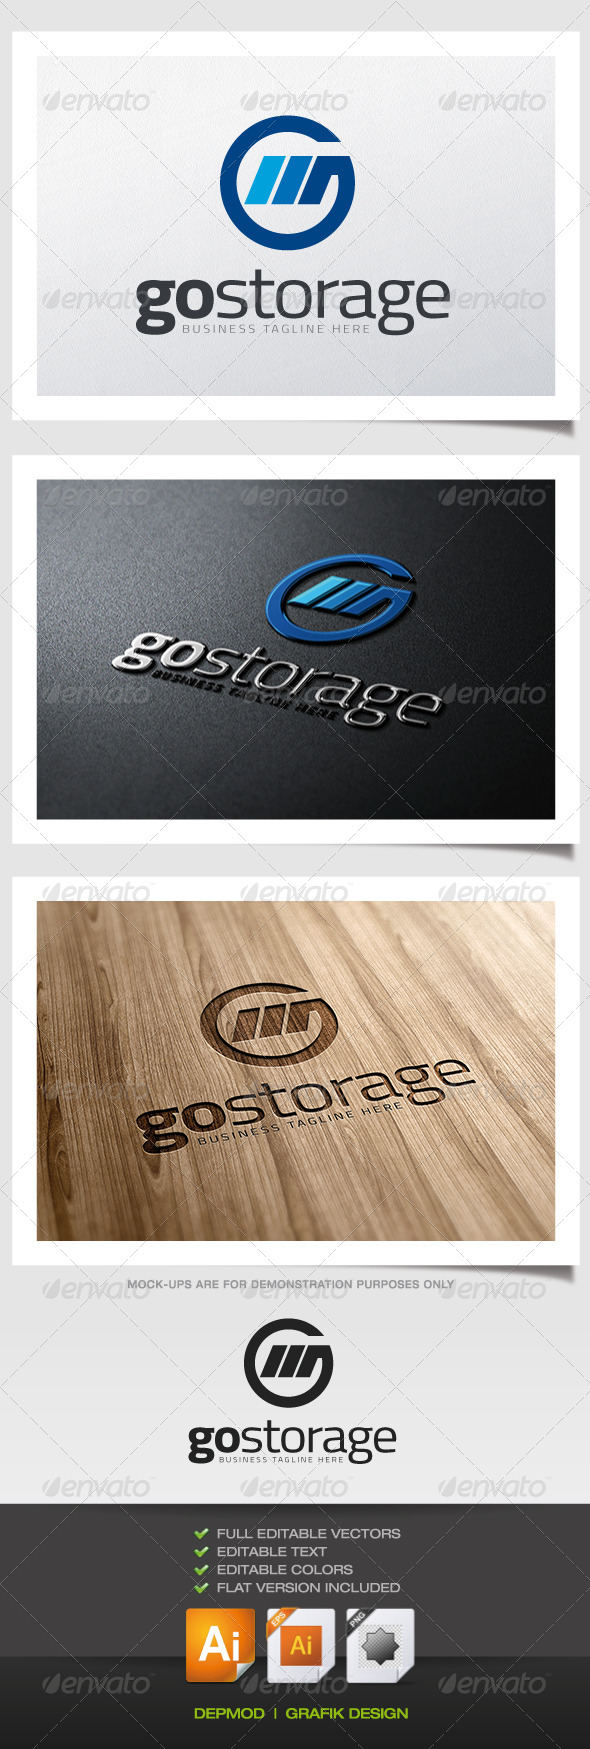 GraphicRiver Go Storage Logo 5679174